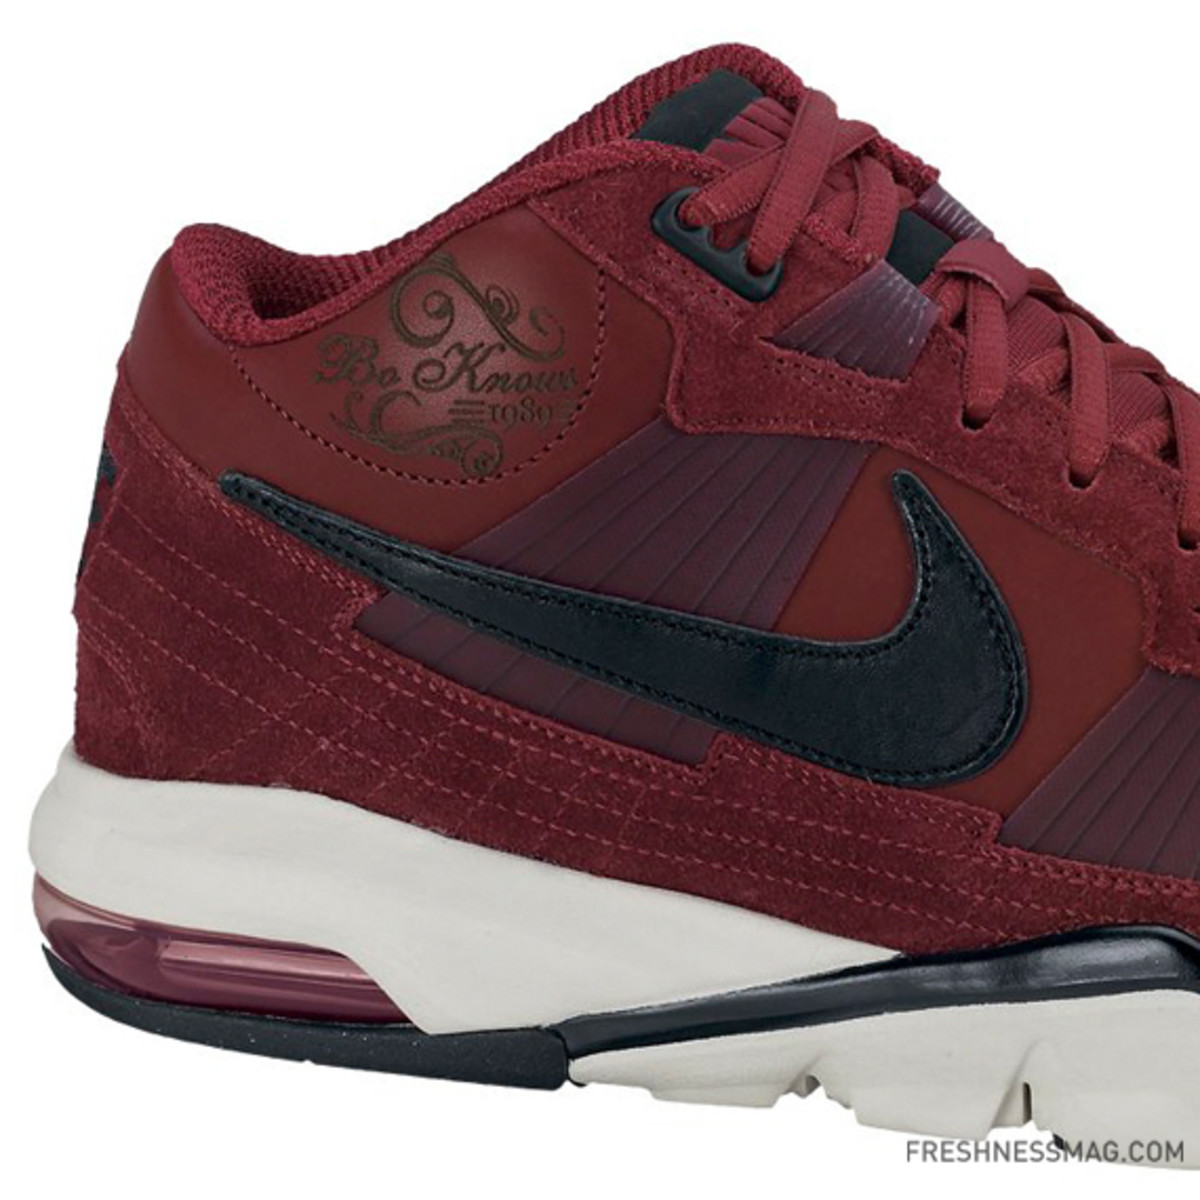 nike-trainer-sc-2010-premium-bo-knows-pack-09